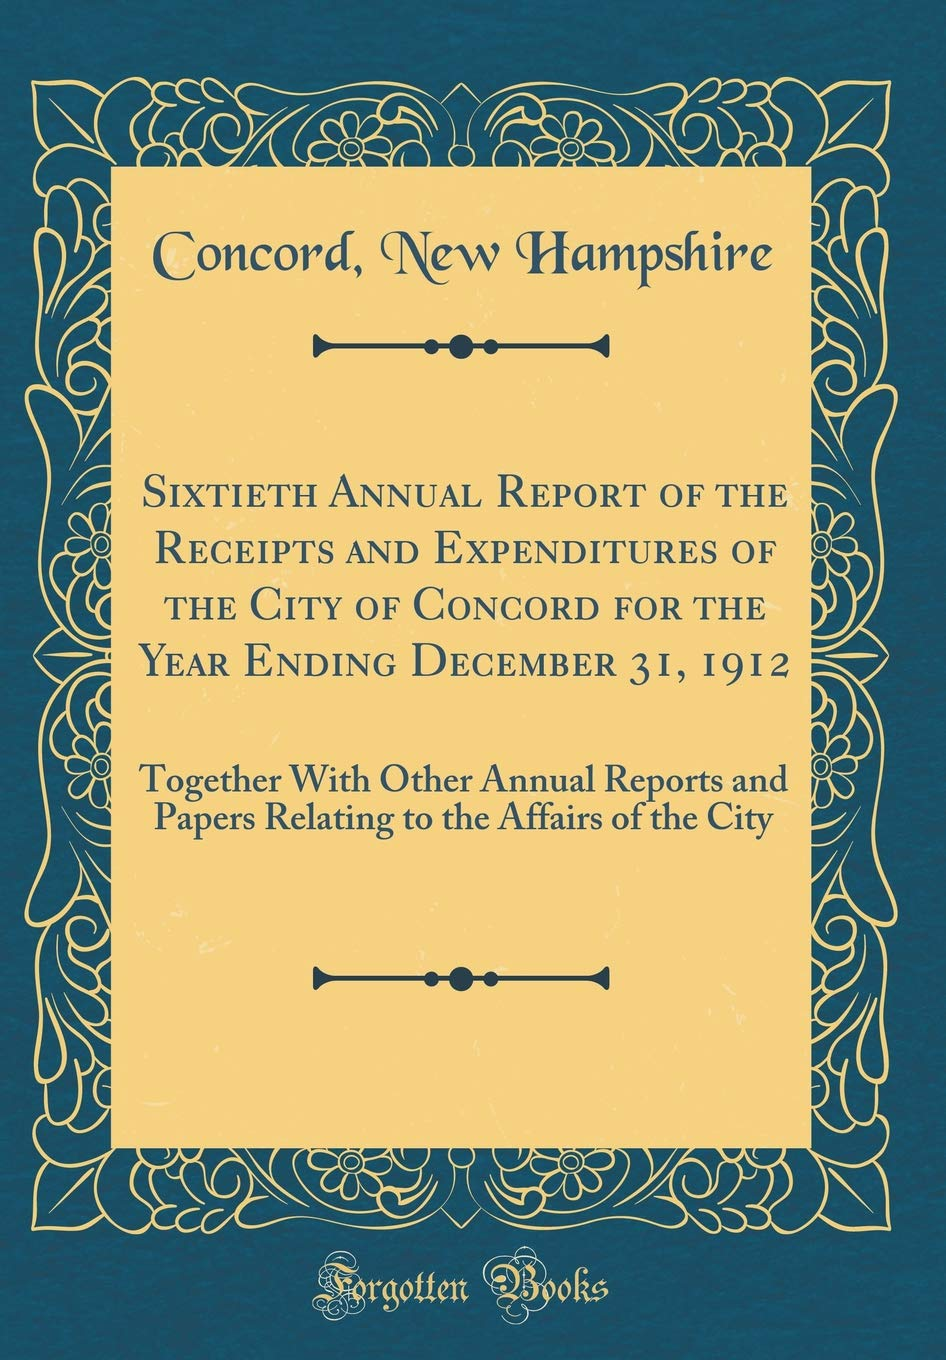 Sixtieth Annual Report of the Receipts and Expenditures of the City of Concord for the Year Ending December 31, 1912: Together With Other Annual ... to the Affairs of the City (Classic Reprint) pdf epub